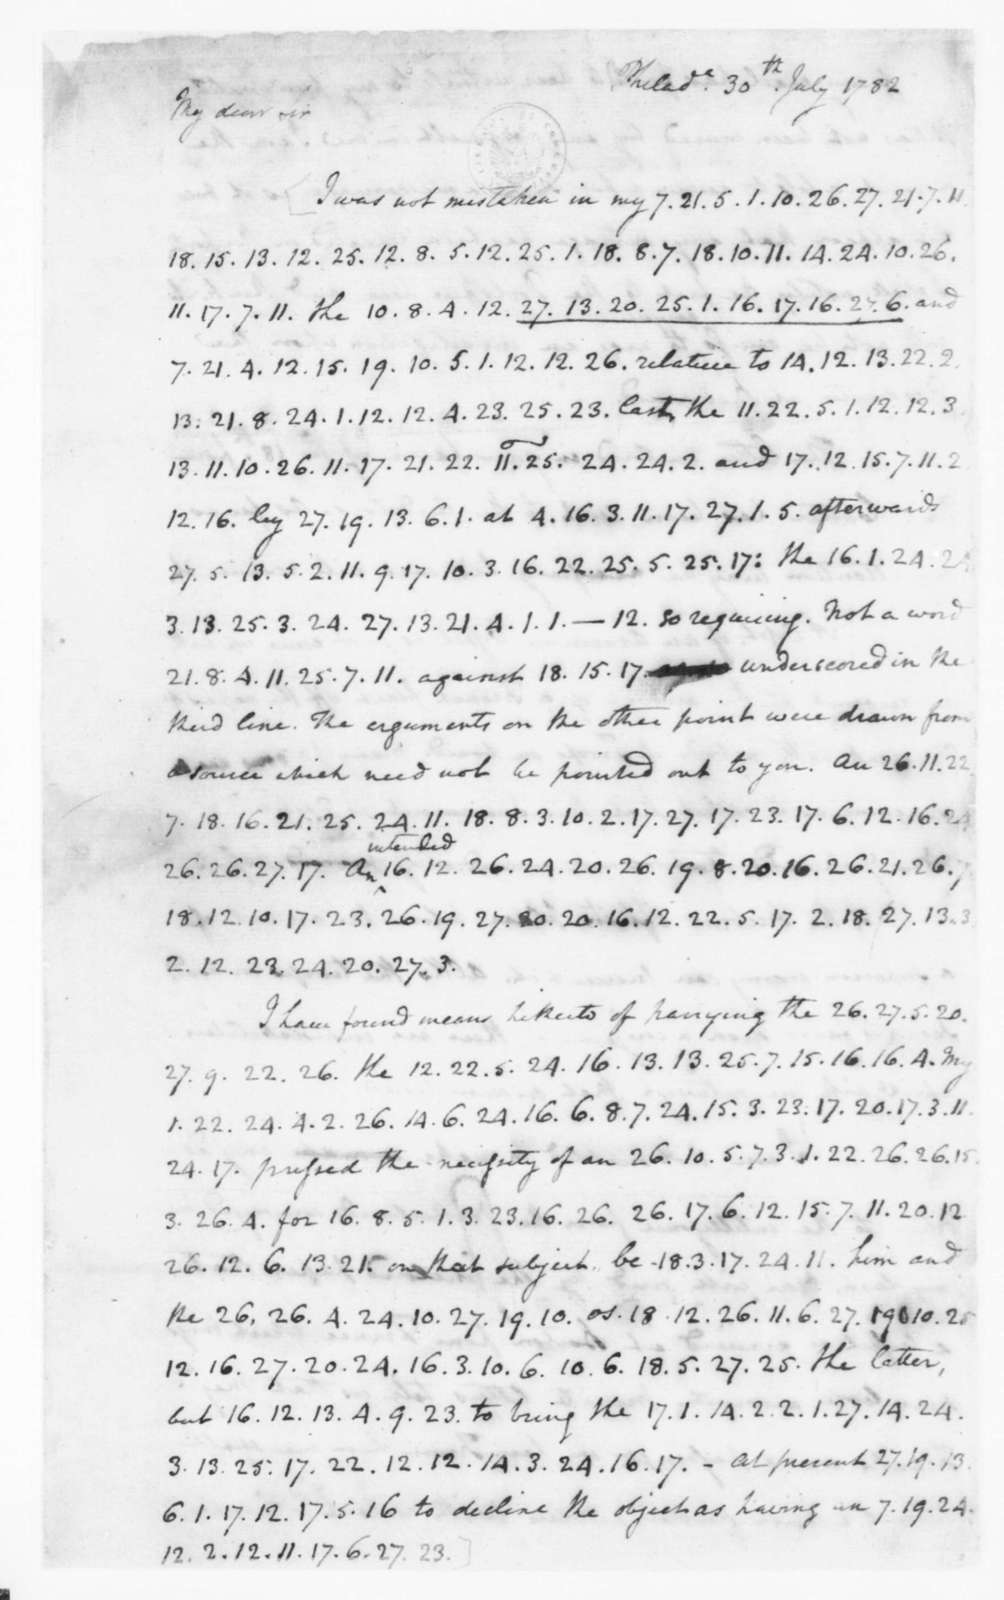 James Madison to Edmund Randolph, July 30, 1782. Partly in Cipher.